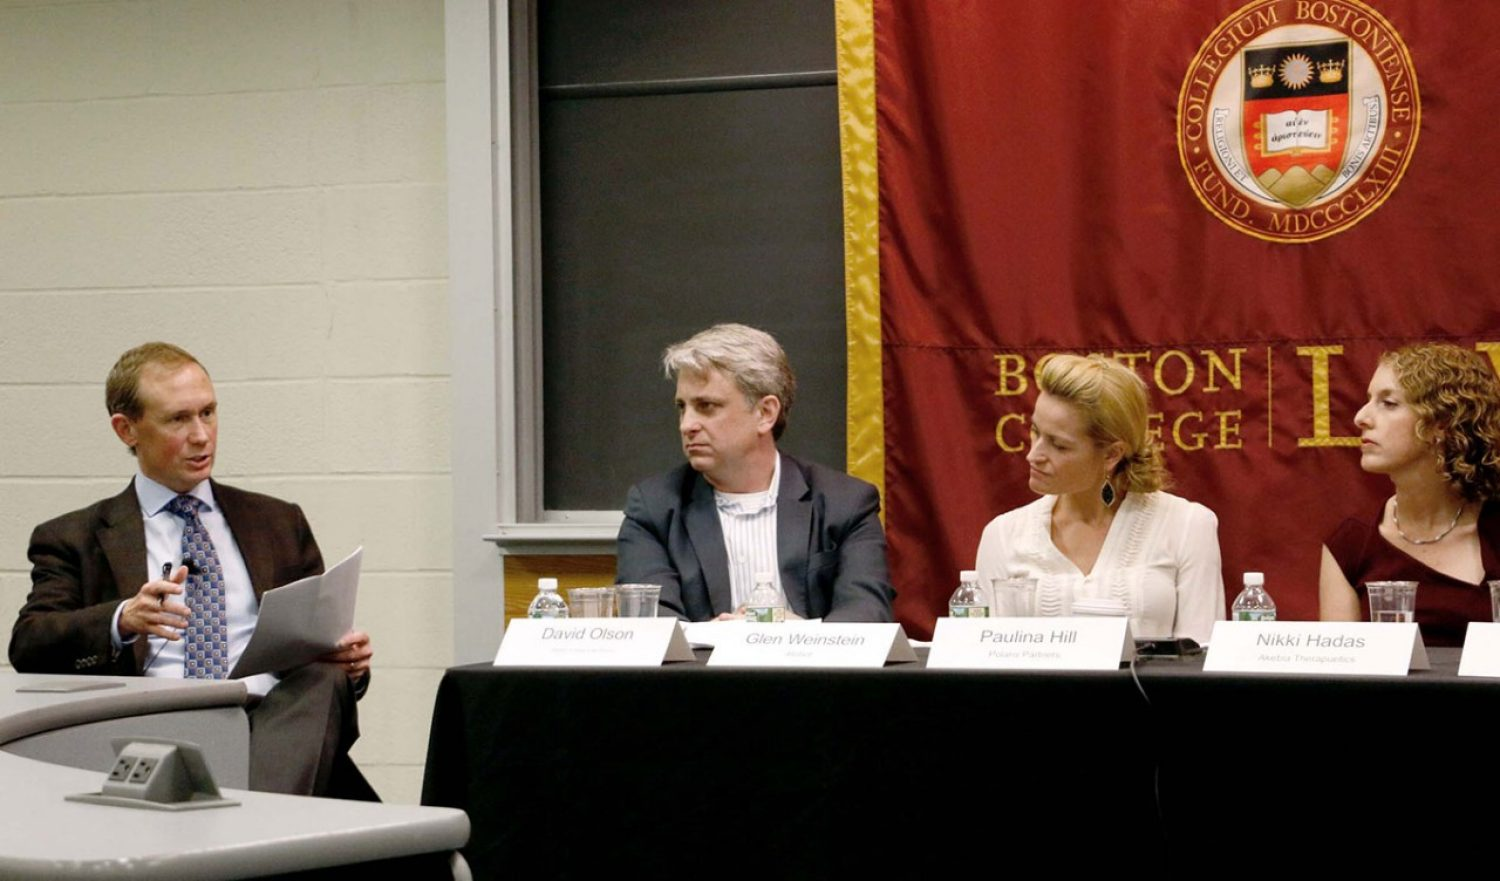 Panel participants with Olson